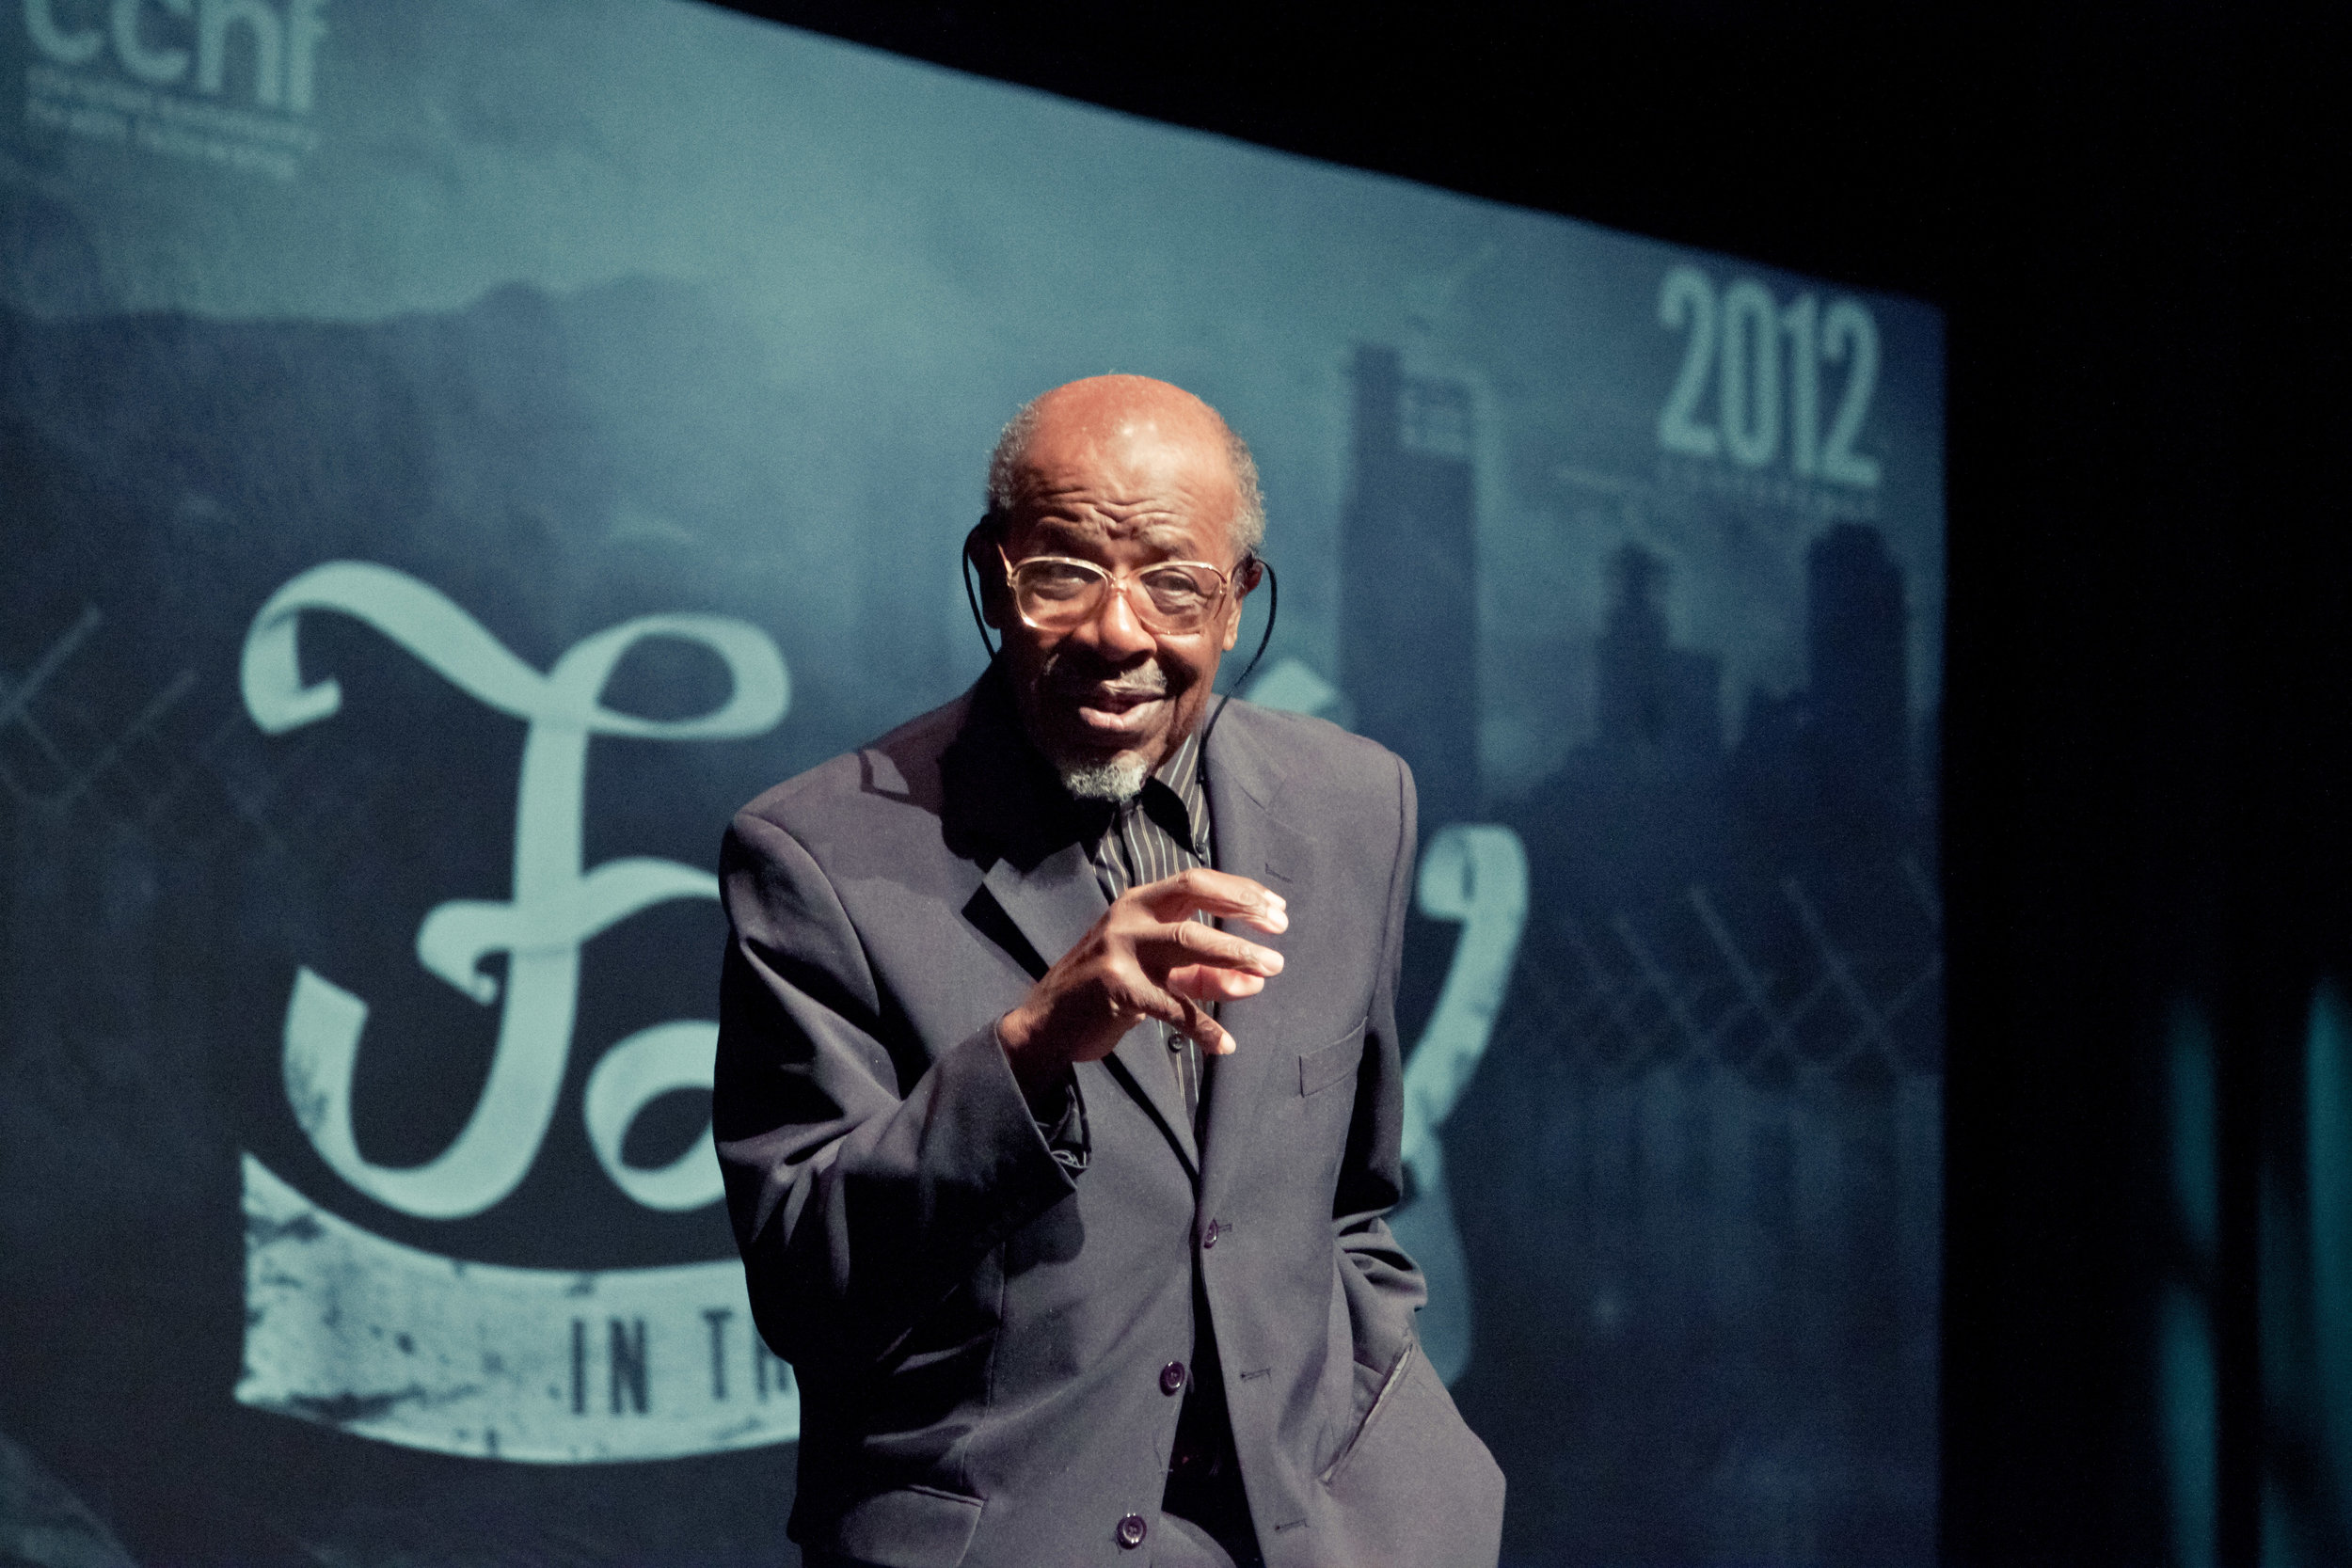 - Plenary session speaker Dr. John M. Perkins (at right) is best known for his civil rights leadership from the 1960s onward, preaching a message of racial reconciliation and love, as well as for founding the Christian Community Development Association (CCDA).